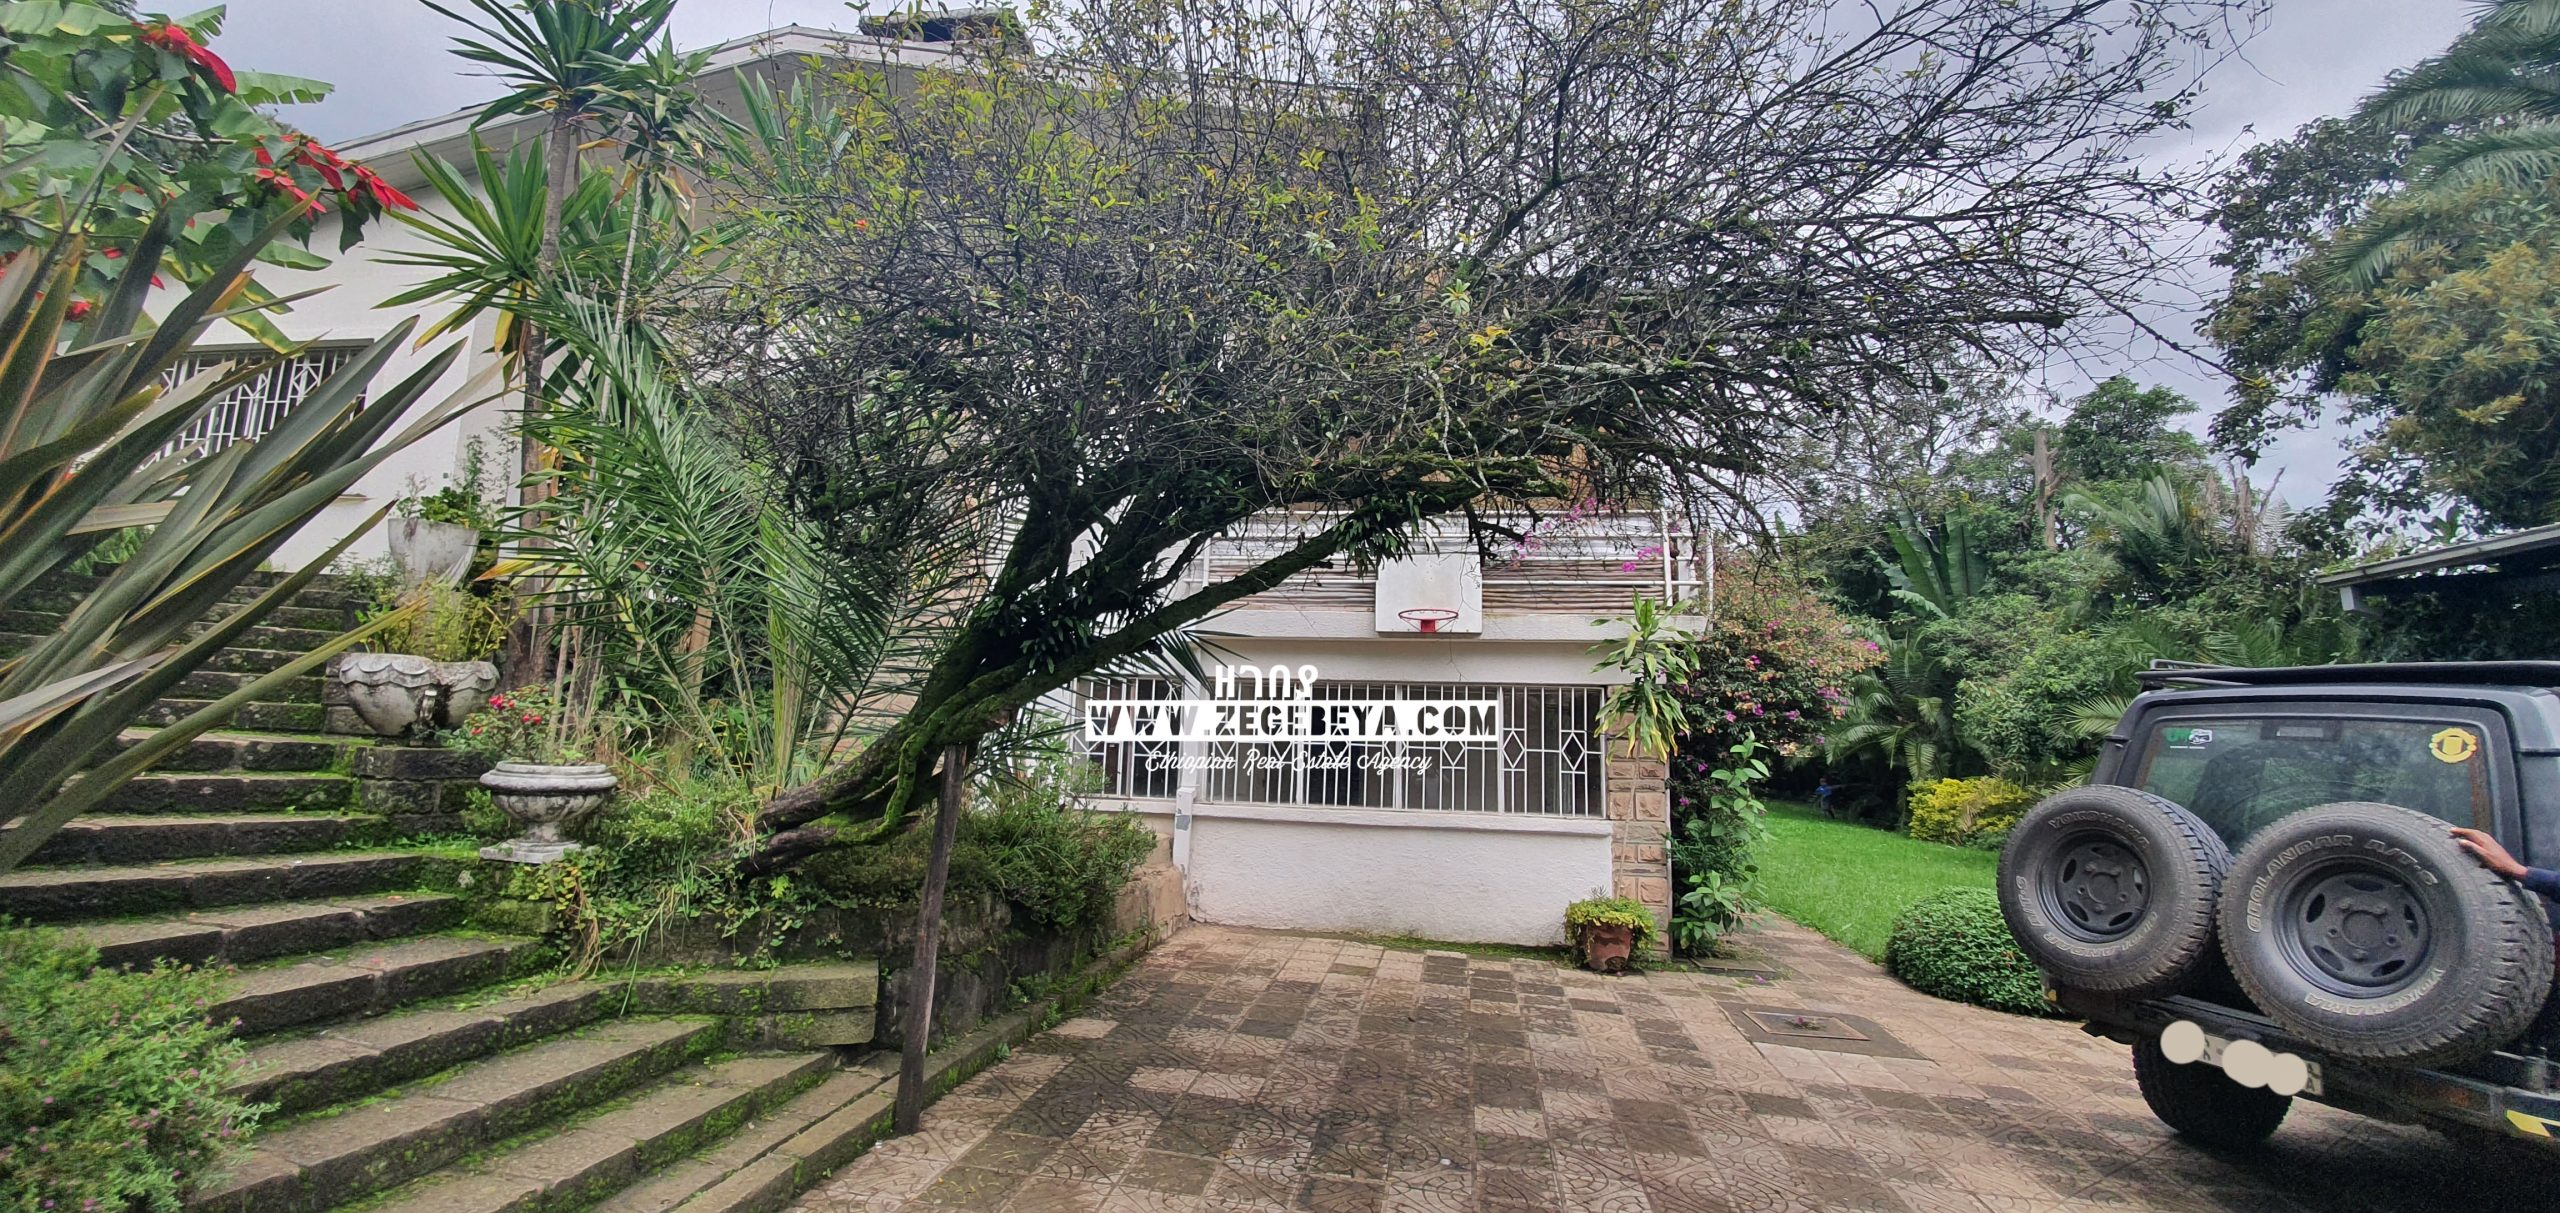 4 Bedroom House For Rent At Old Airport